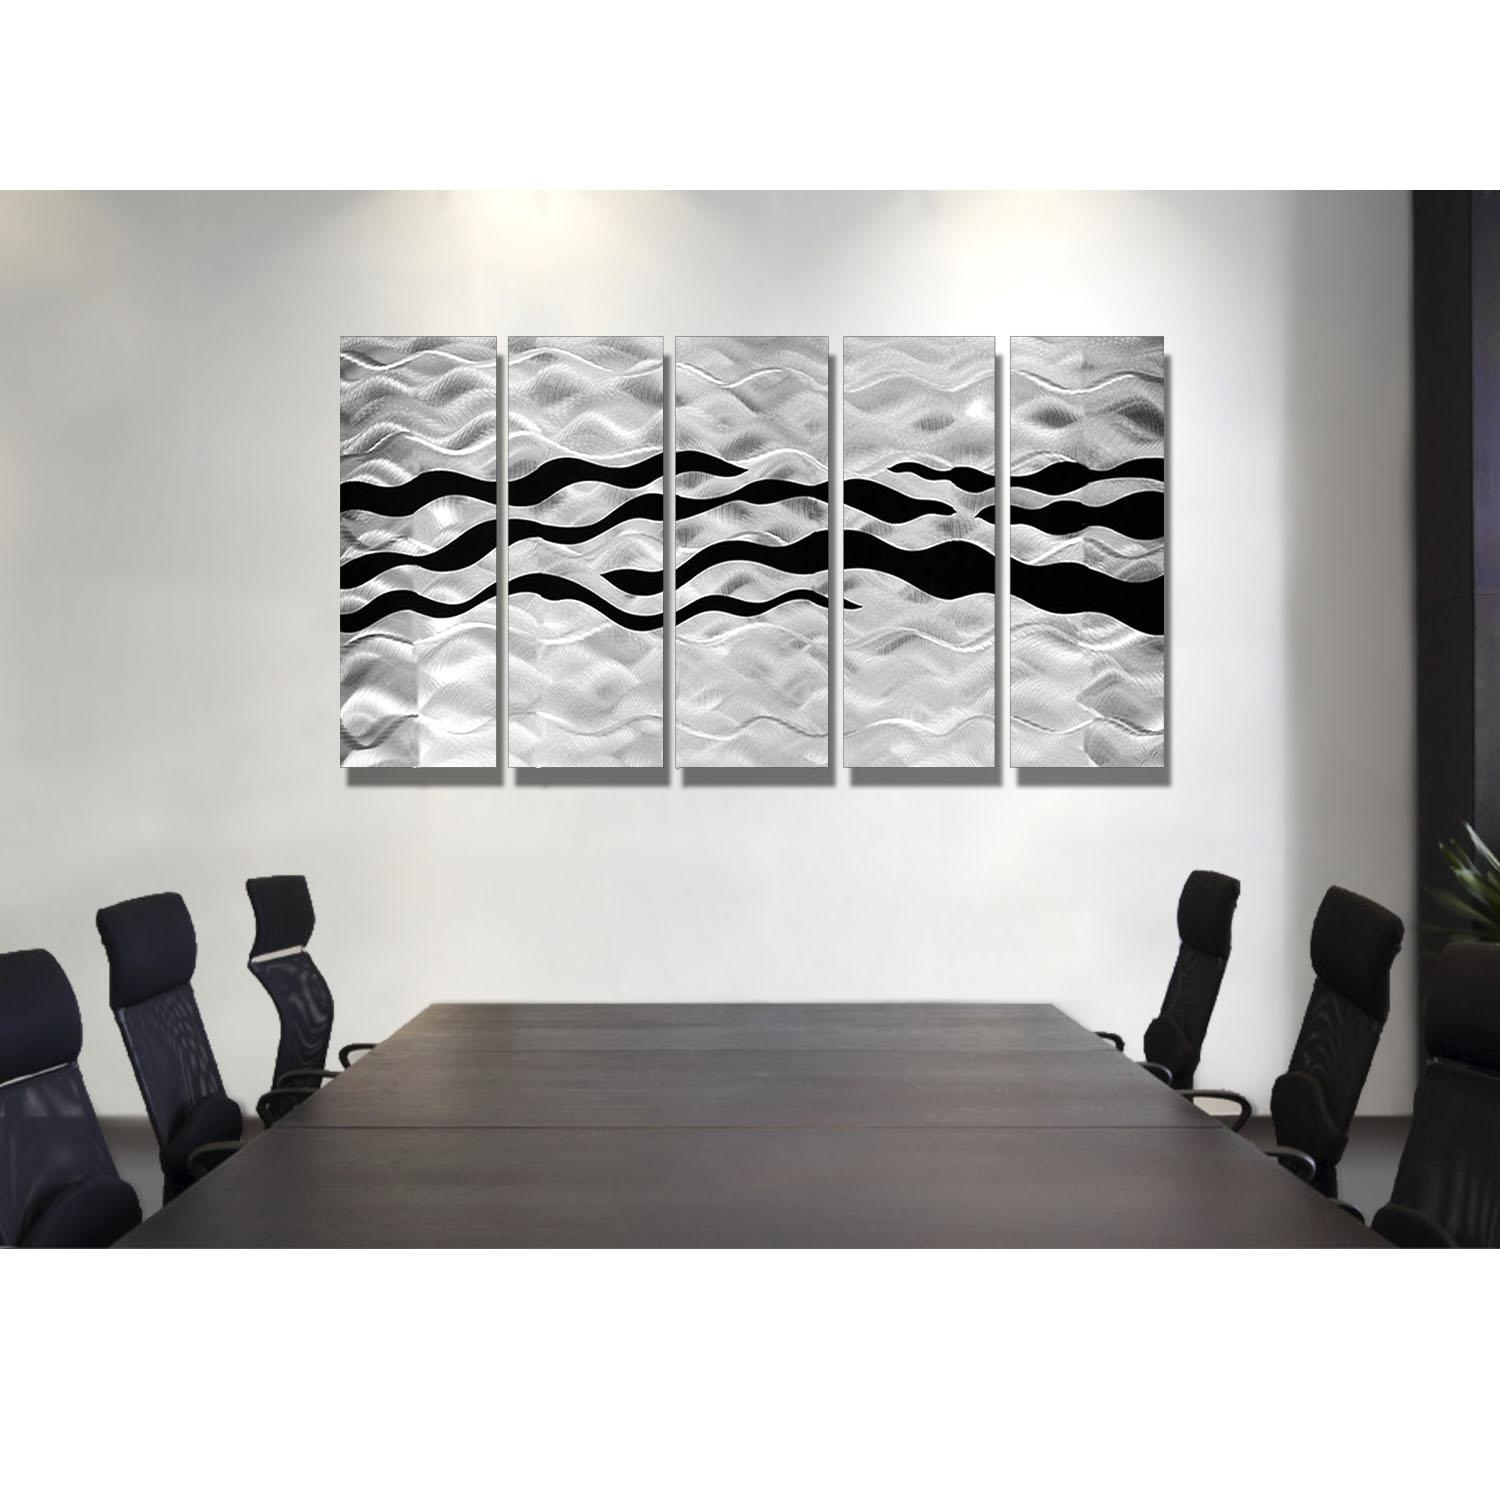 Onyx Oceana – Silver And Black Metal Wall Art – 5 Panel Wall Décor Inside Black Silver Wall Art (Image 14 of 20)